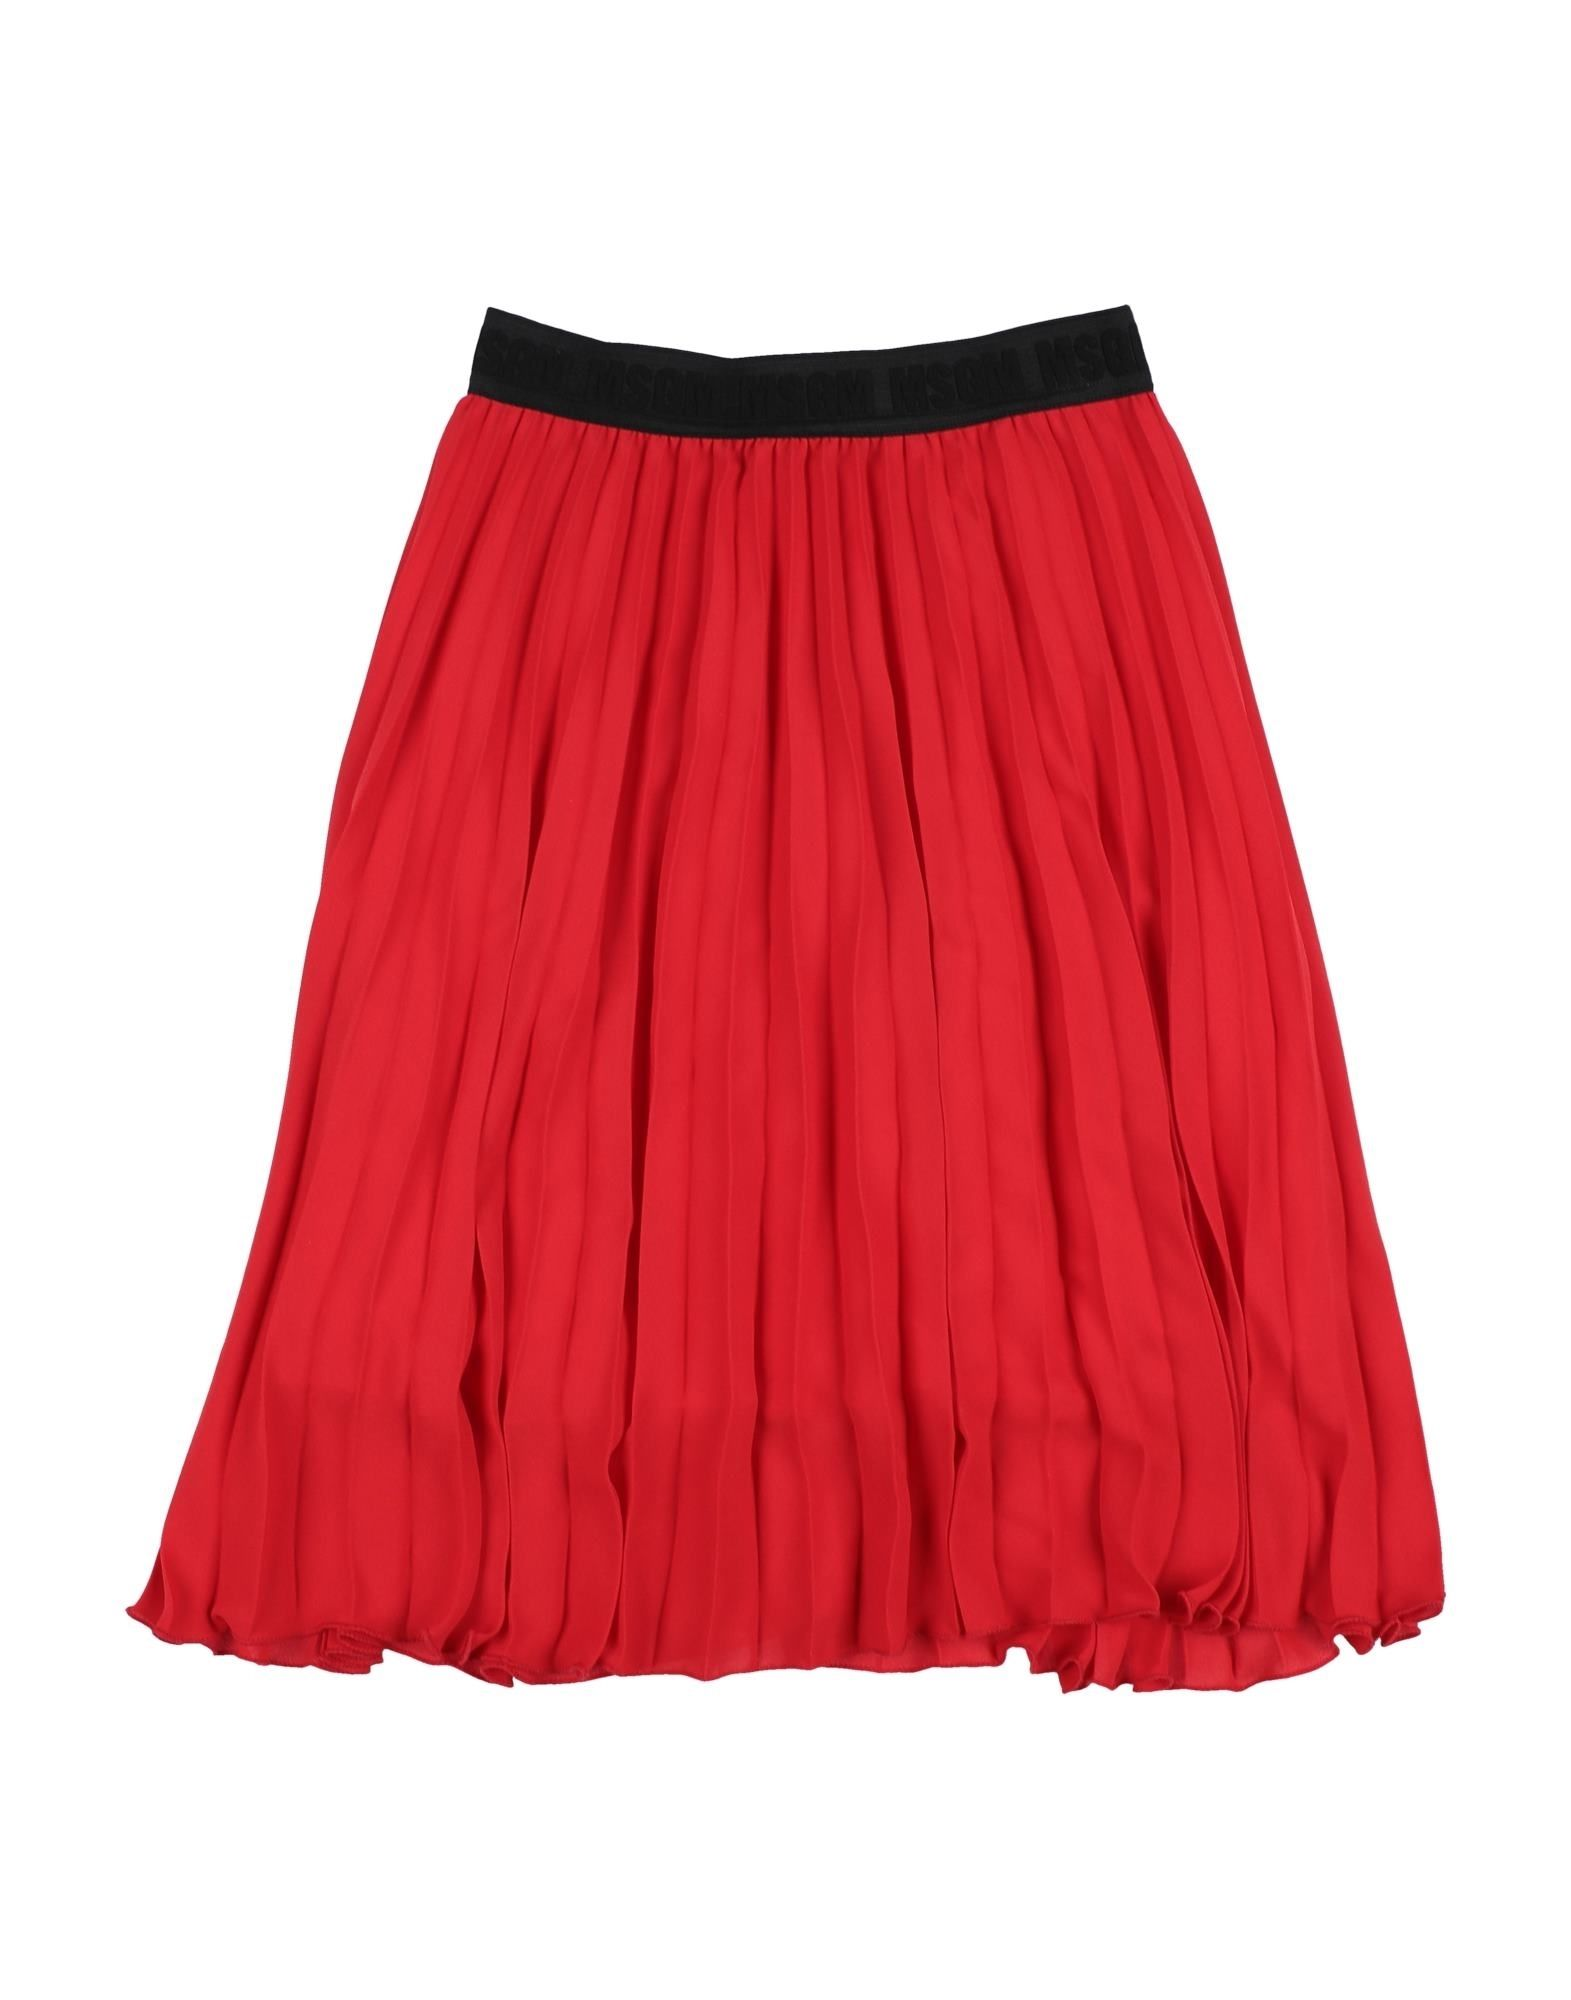 MSGM Skirts. plain weave, pleated, logo, basic solid color, mid rise, elasticized waist, no pockets, slip to line, do not wash, dry cleanable, do not iron, do not bleach, do not tumble dry. 100% Polyester